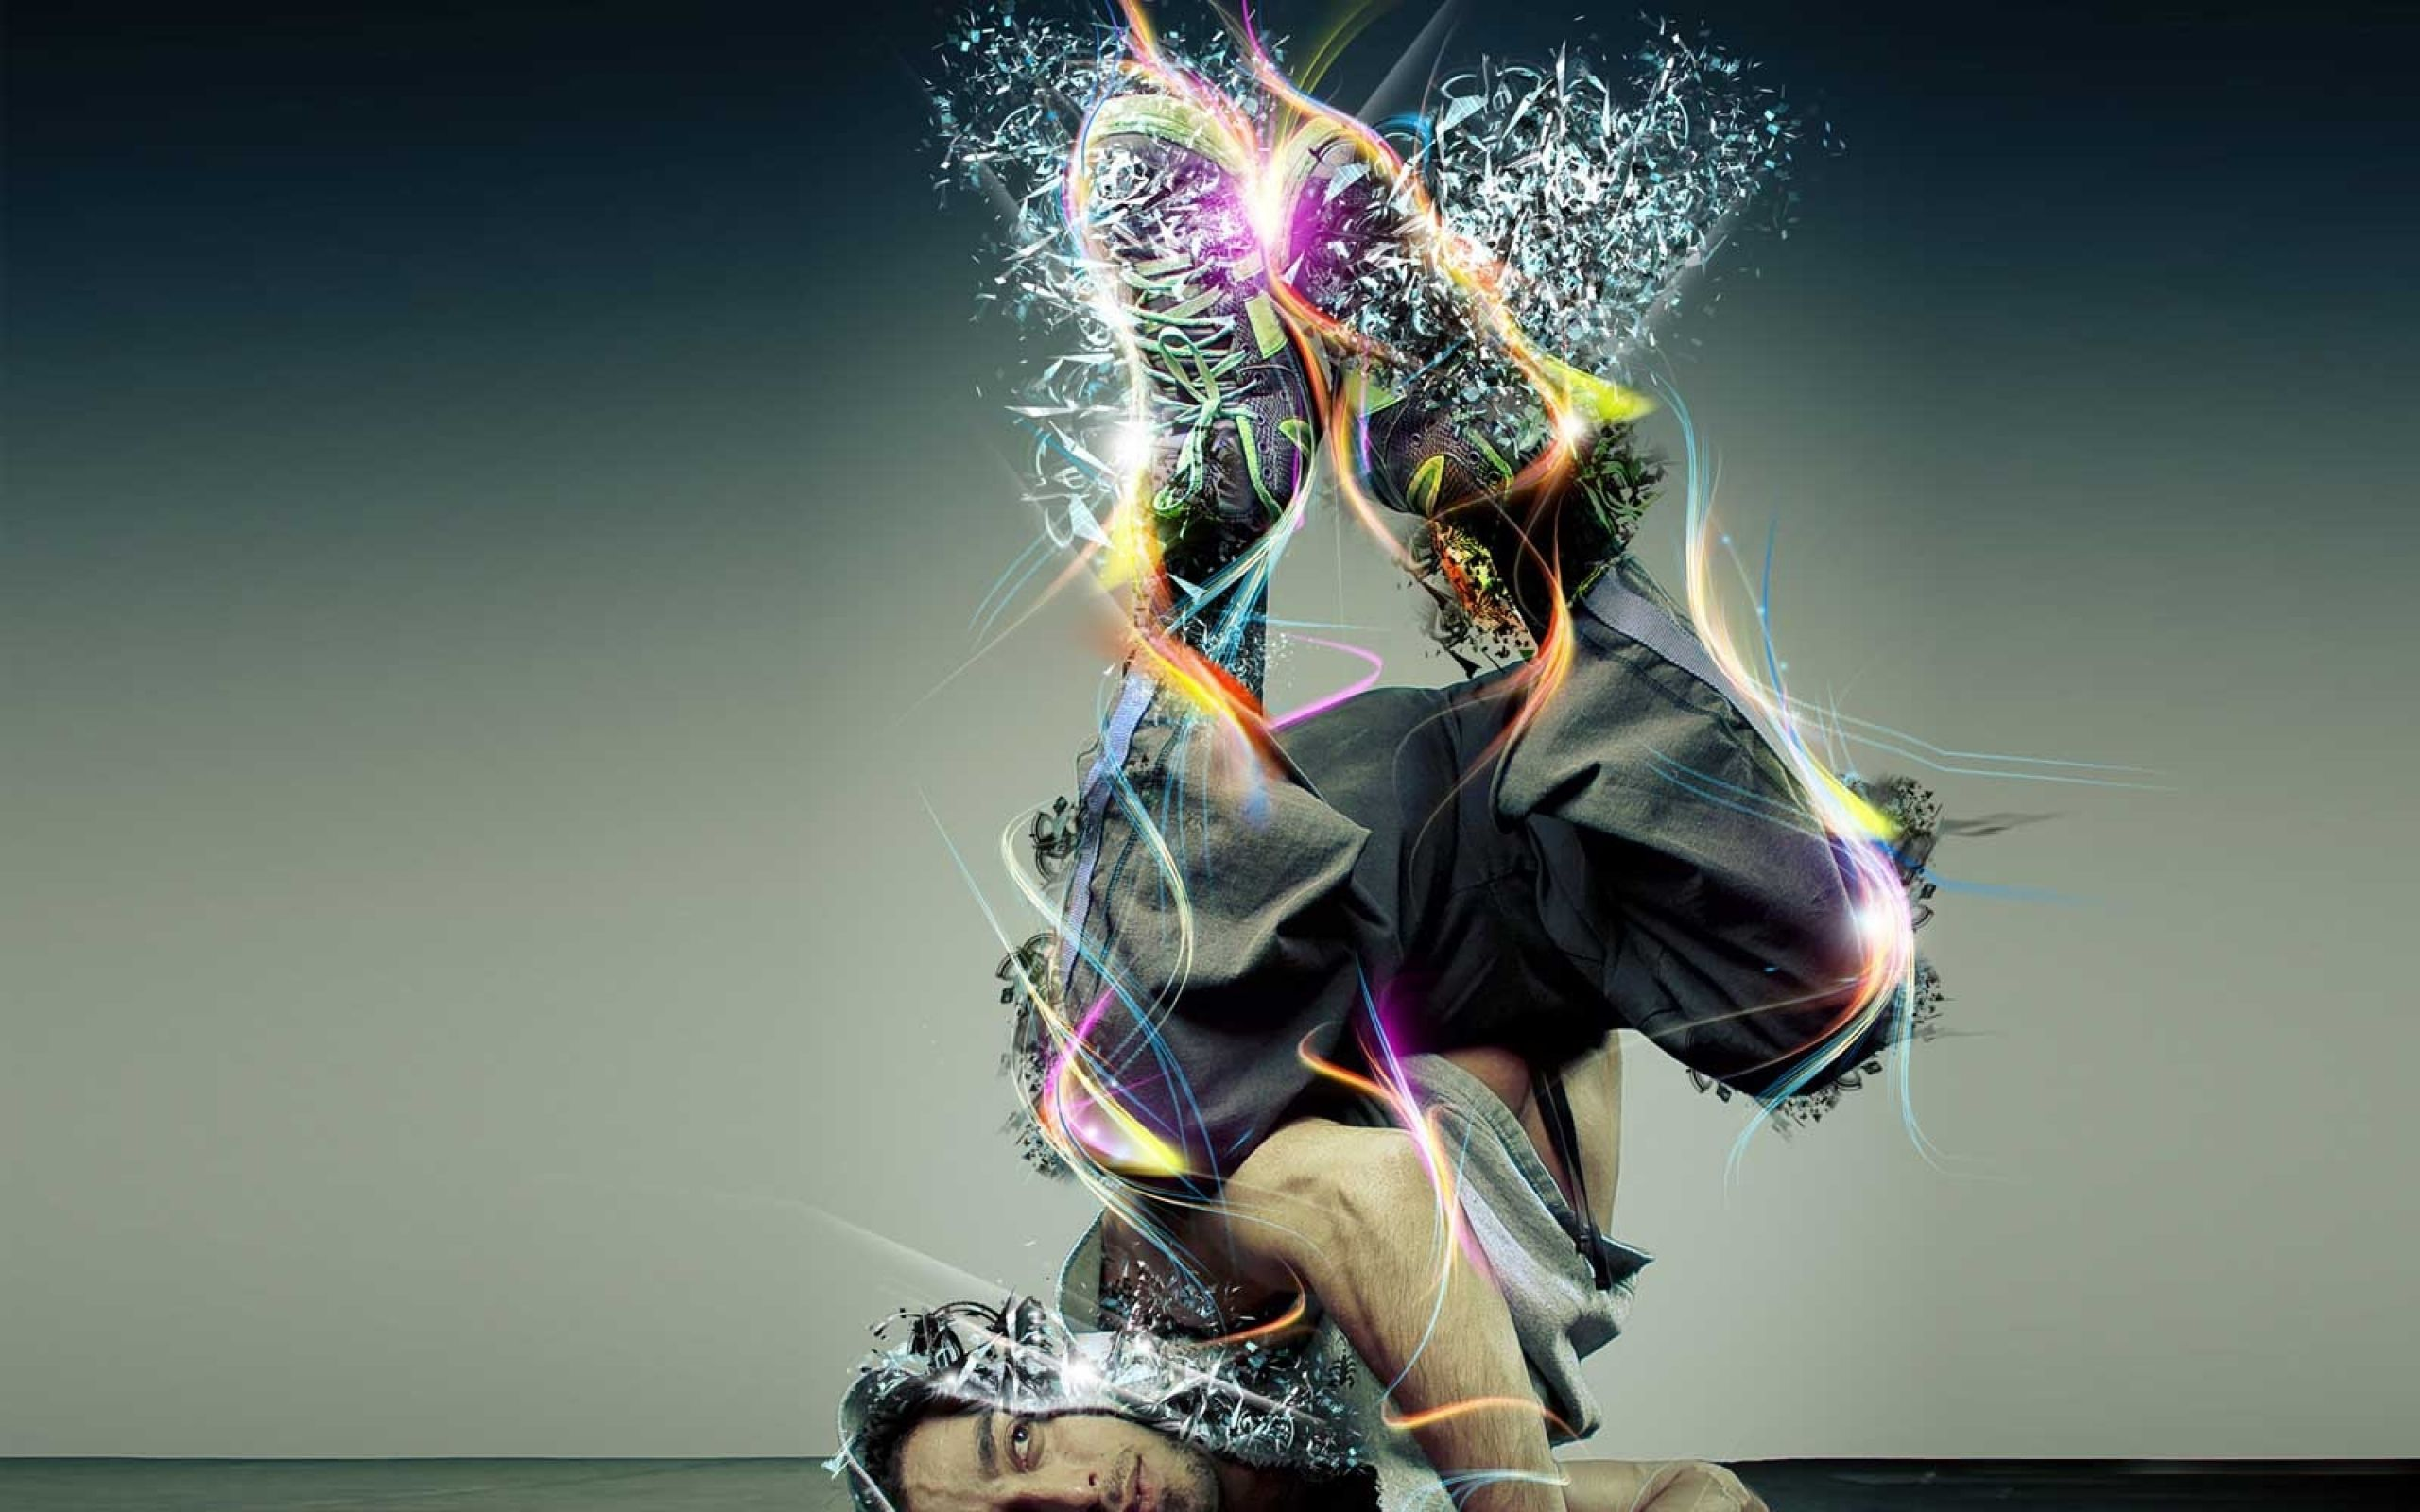 Abstract Dance Wallpapers   Top Abstract Dance Backgrounds 2560x1600